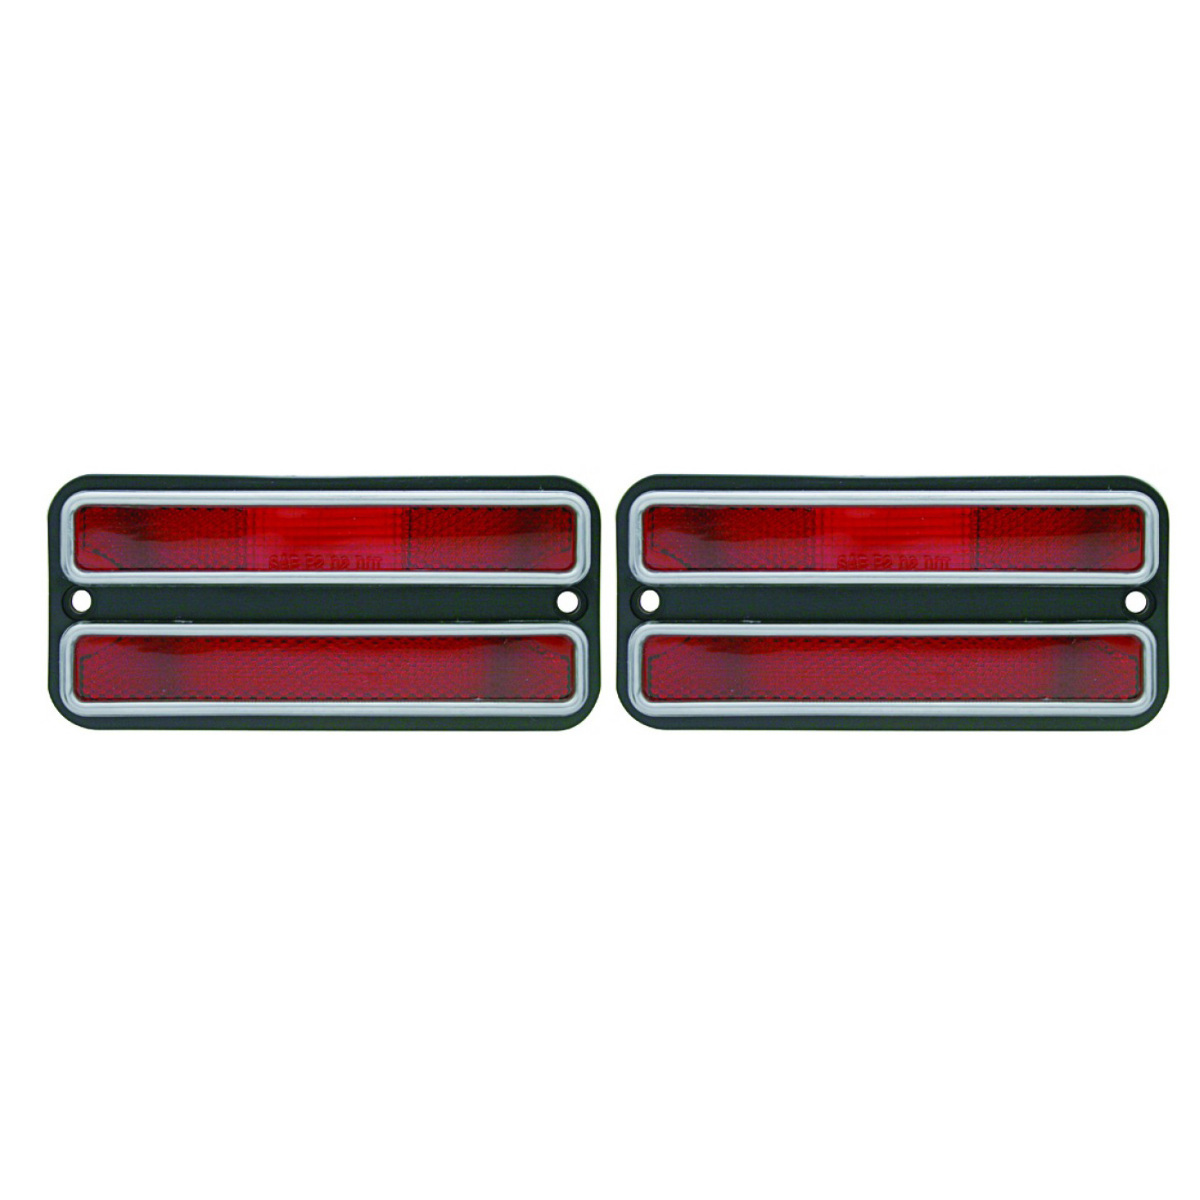 2 1968 1972 chevy truck red clearance side marker light housings 69 70 71 pirate mfg. Black Bedroom Furniture Sets. Home Design Ideas